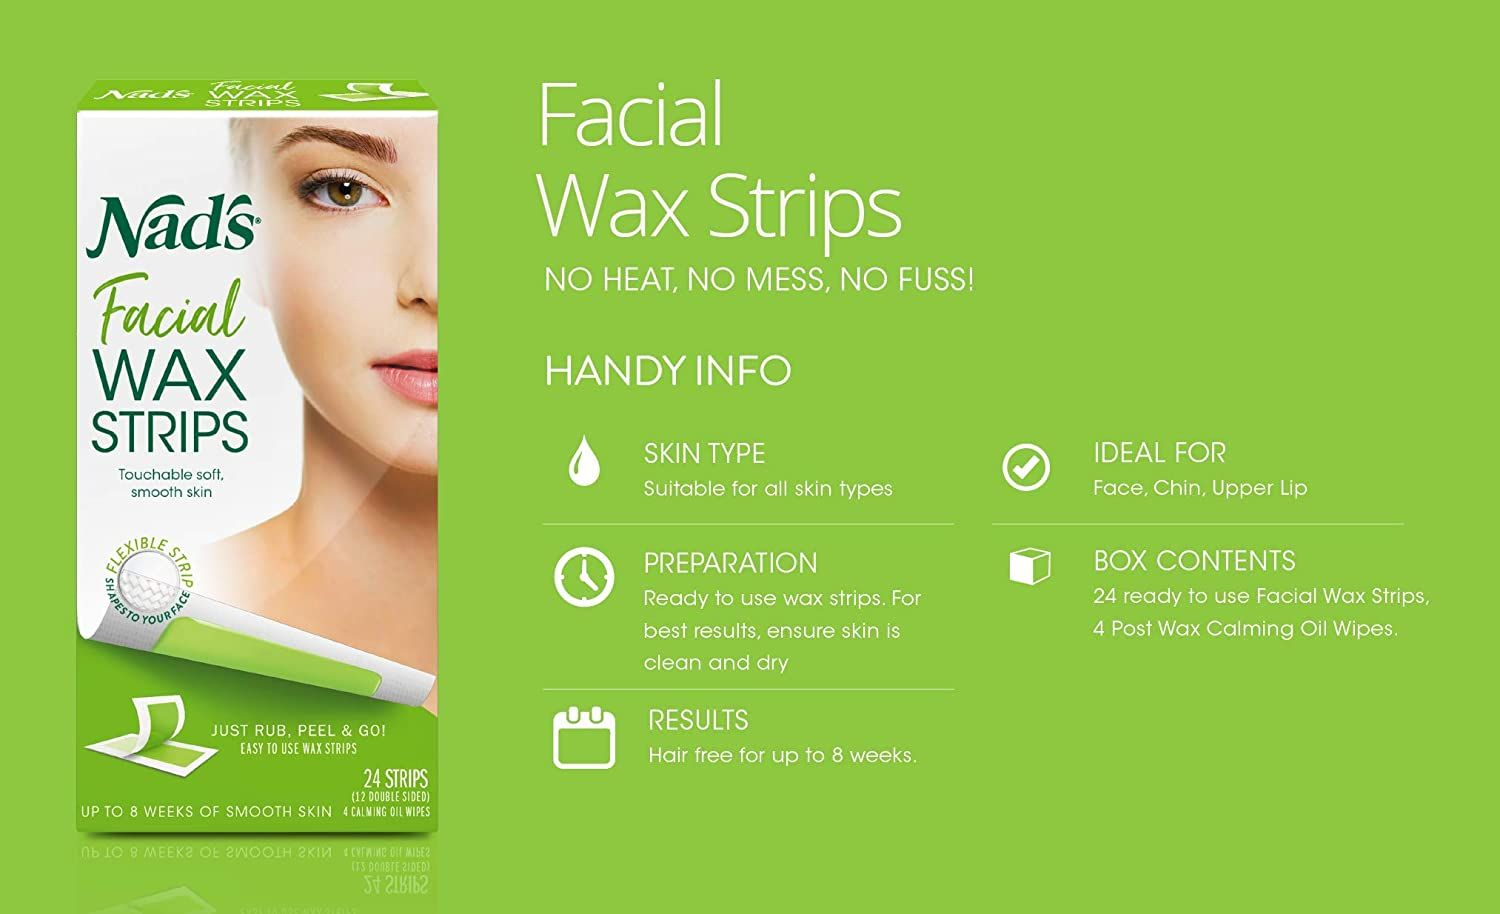 Nad's Facial Wax Strips Hypoallergenic All Skin Types Facial Hair Removal  For Women - At Waxing Kit in 2020 | Facial waxing, Face wax, Facial hair  removal